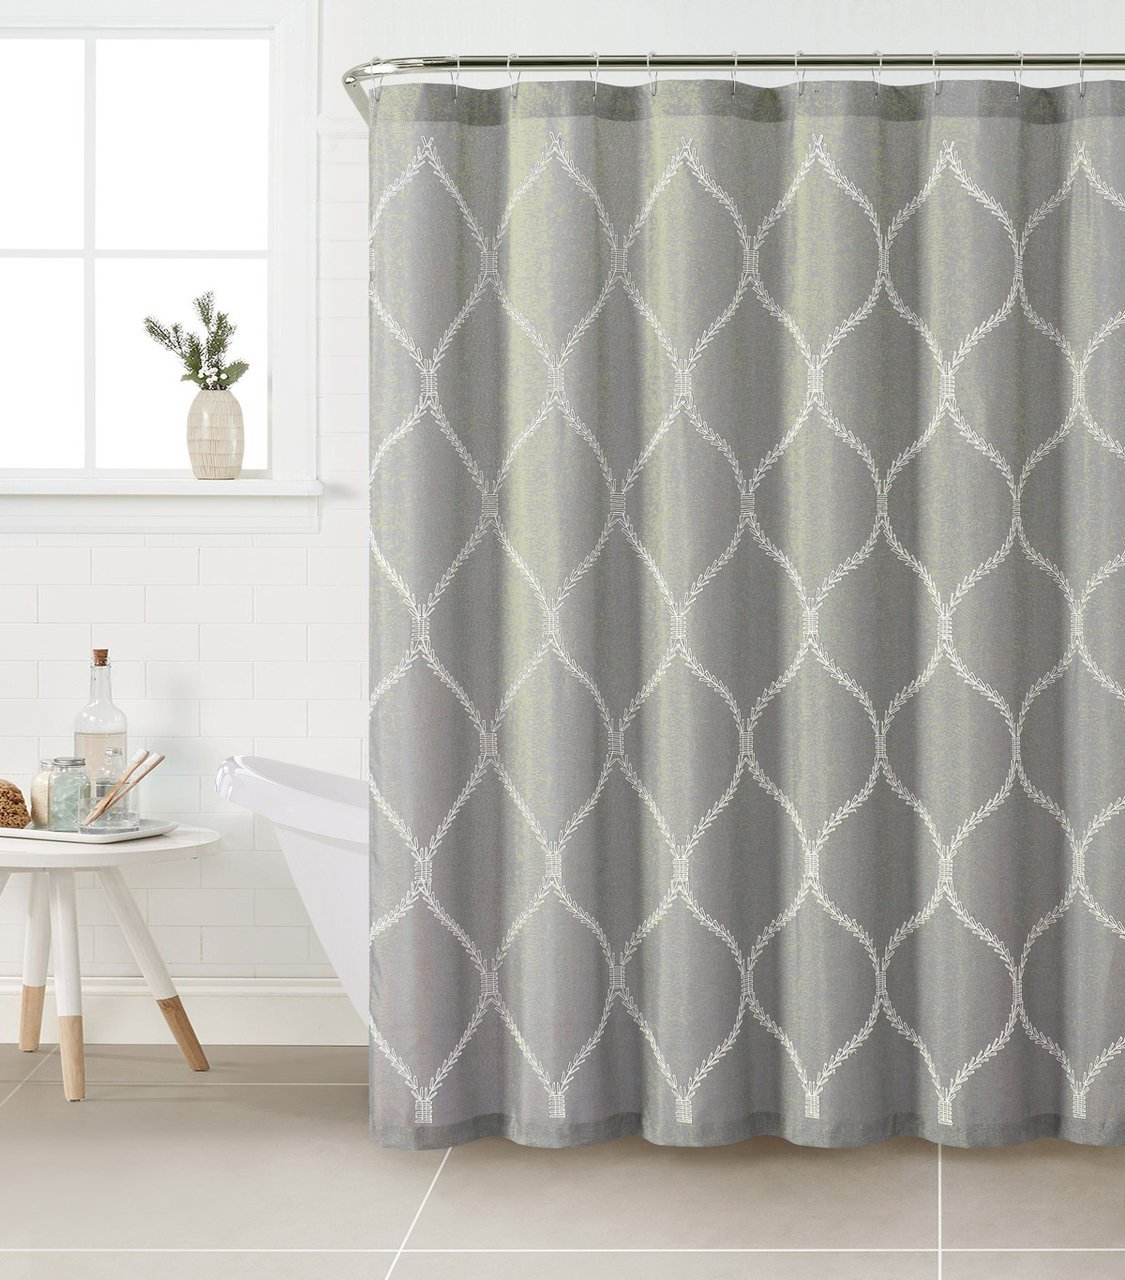 Get Quotations · Fabric Shower Curtain With White Embroidered Trellis  Design (Silver Gray)